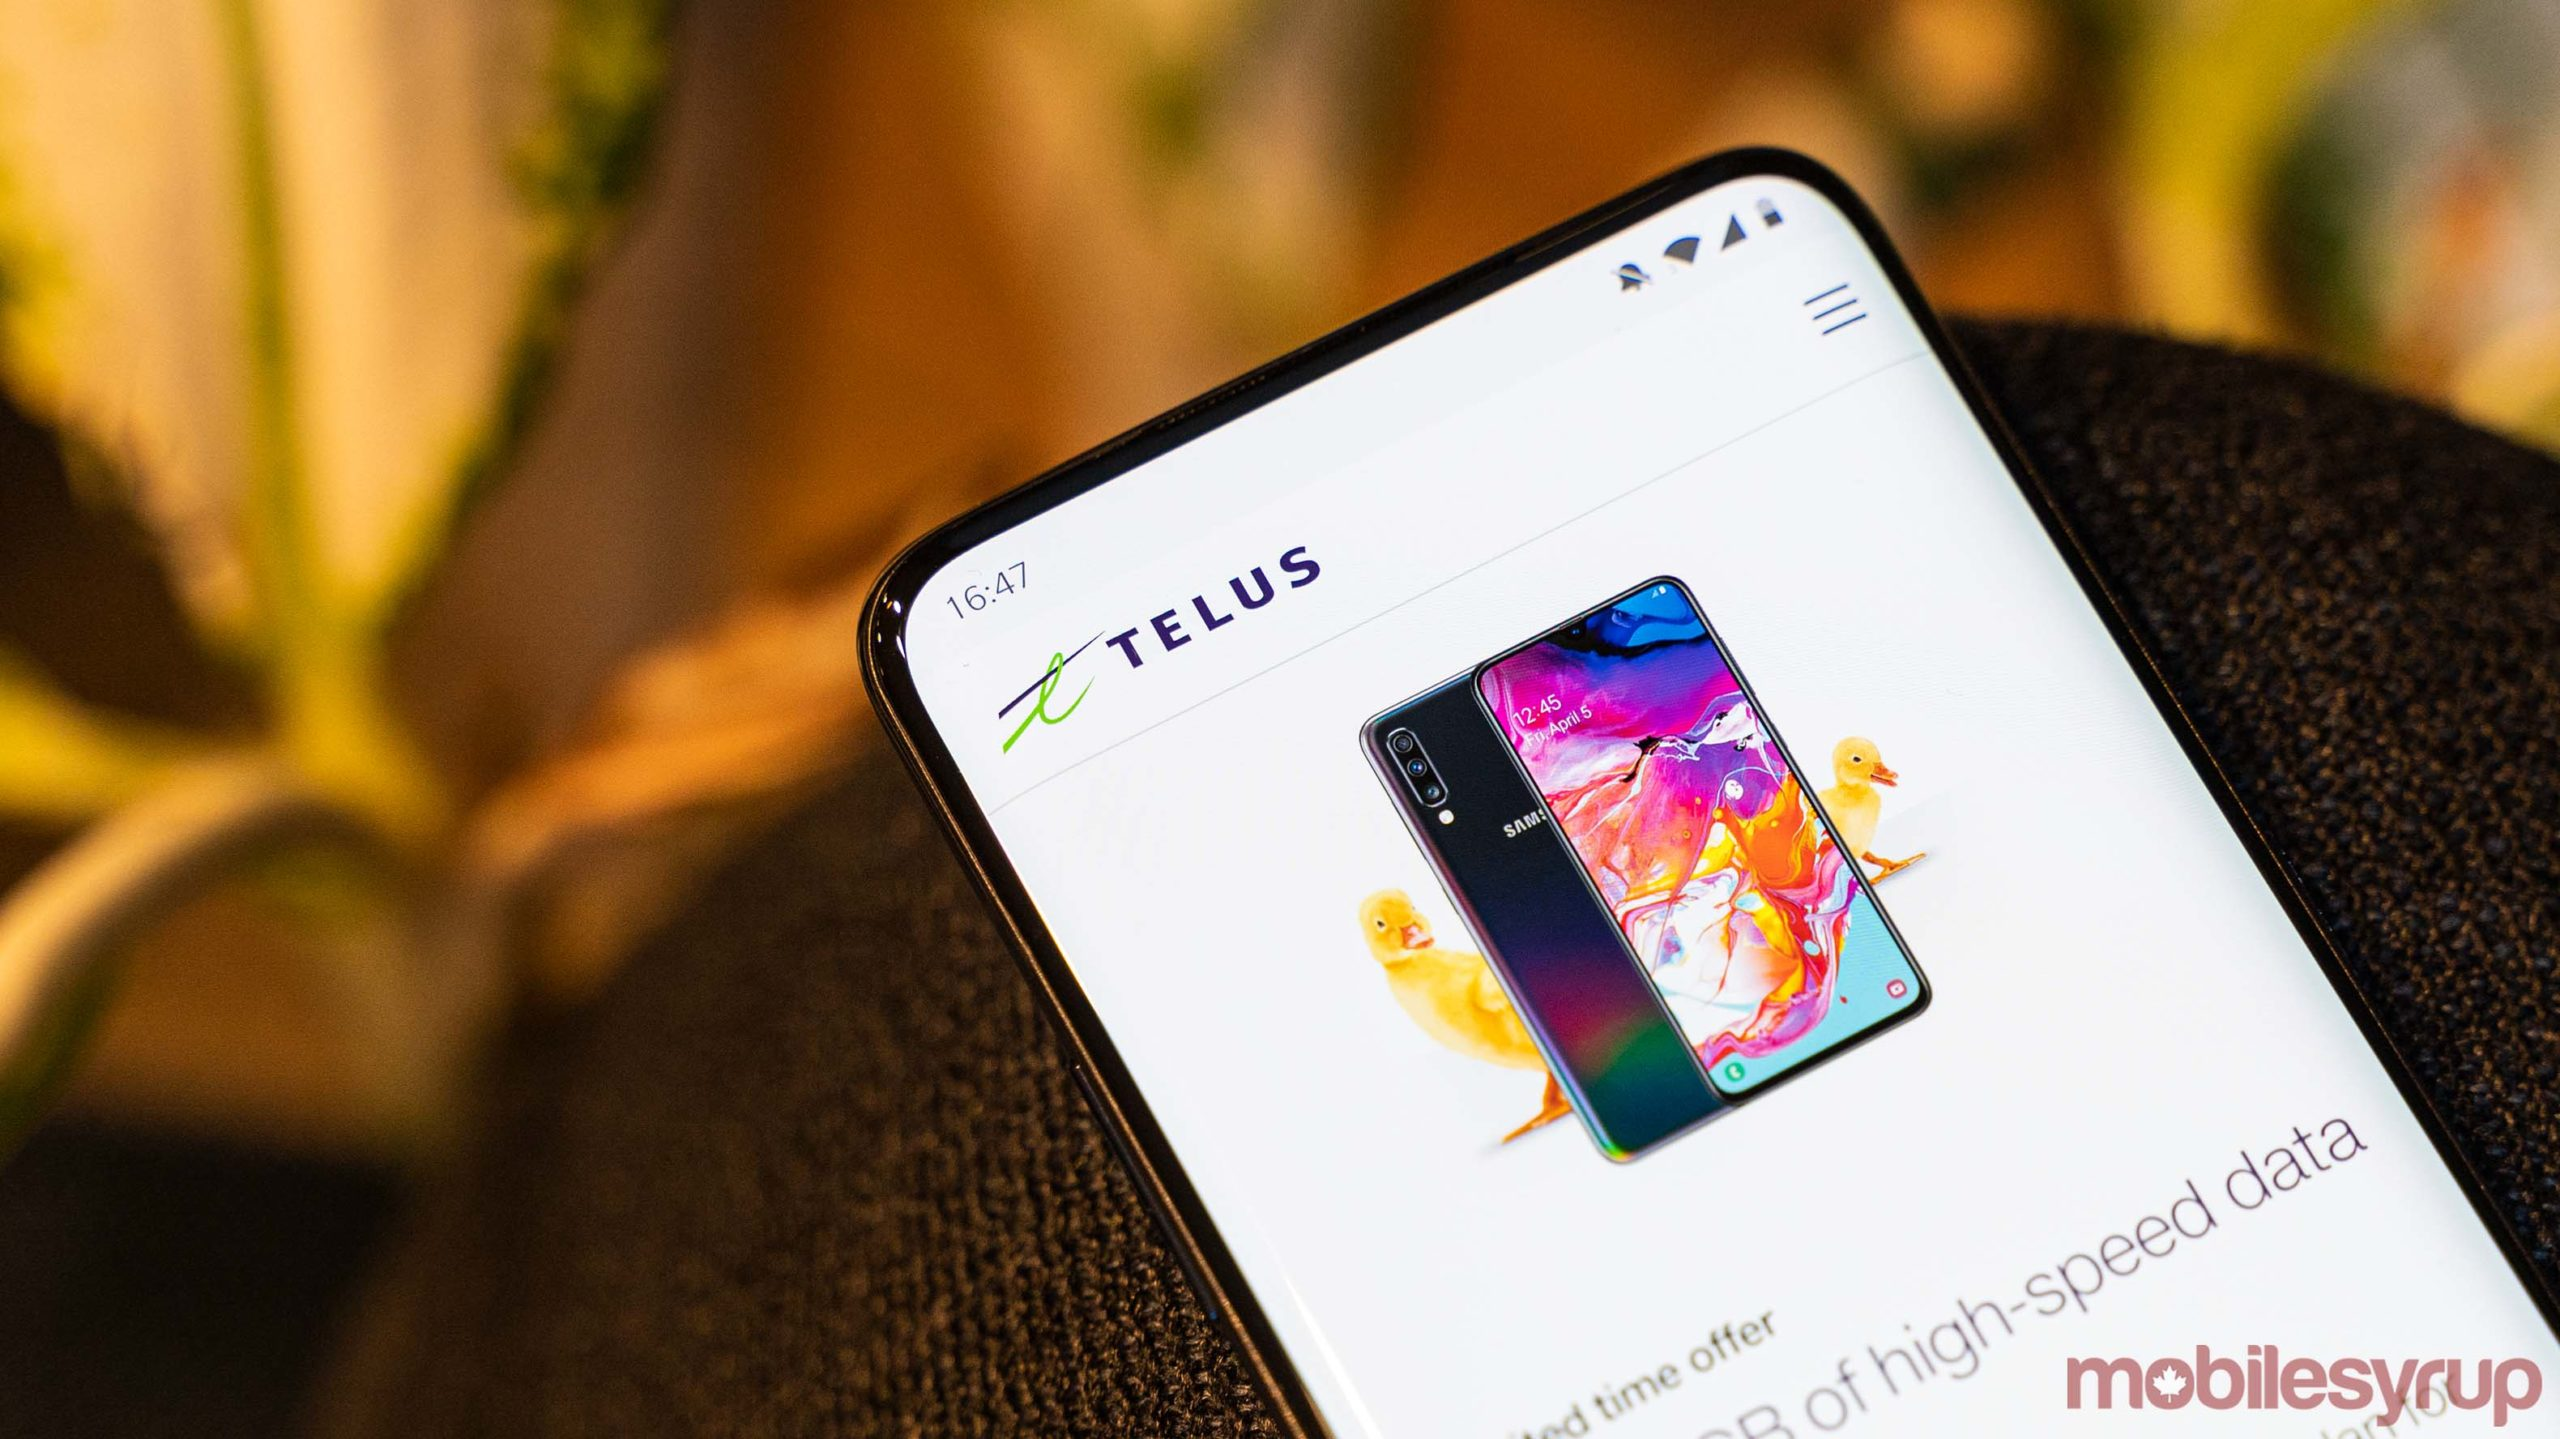 Telus website